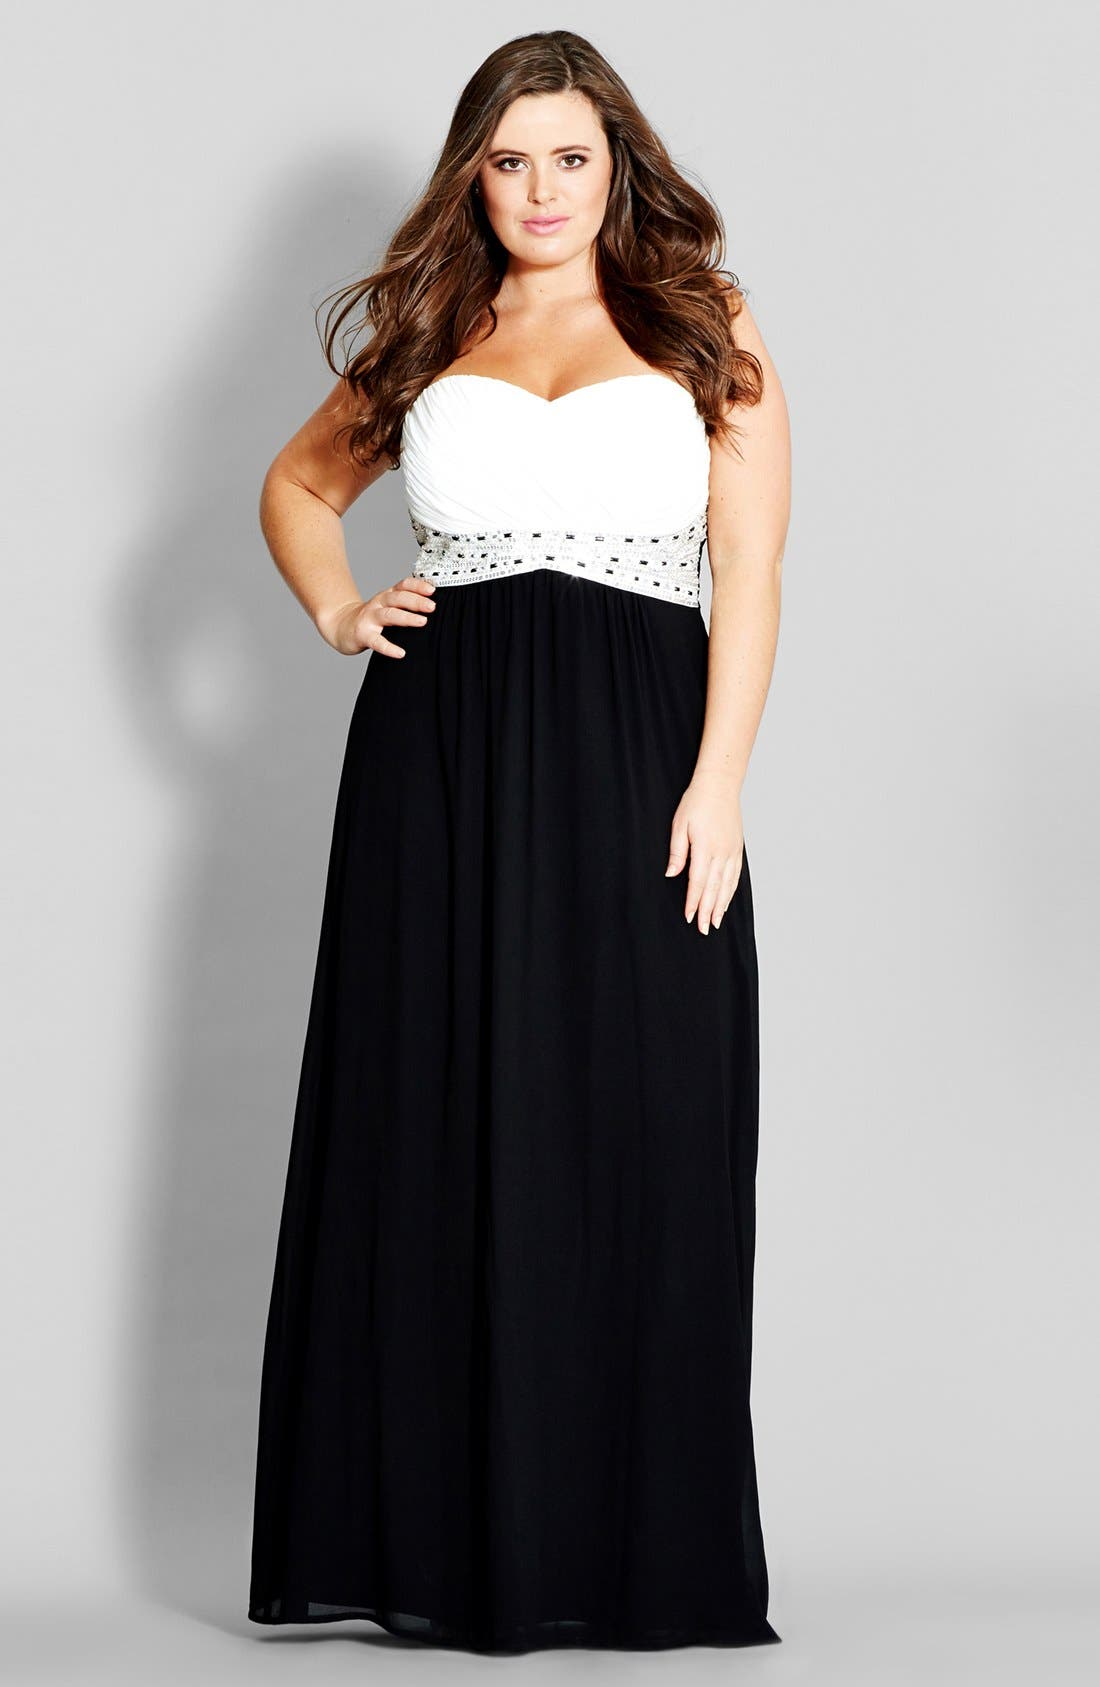 'Contrast Camilla' Embellished Strapless Maxi Dress,                             Main thumbnail 1, color,                             001